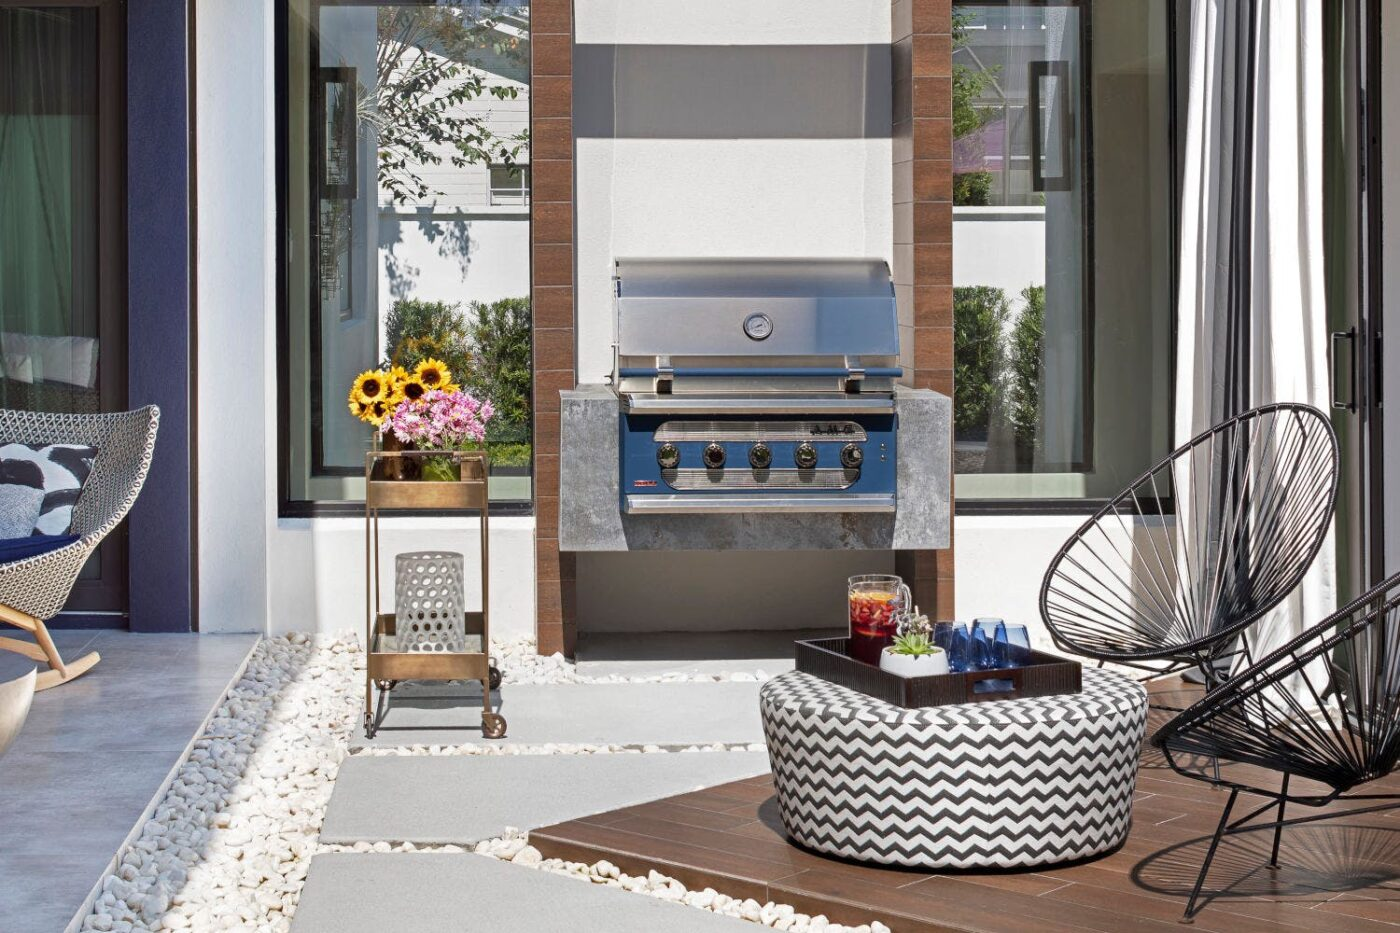 Image of Barbacoa Orix de Dekton Copyright Jessica Klewicki in Terraces: the protagonists of a summer at home - Cosentino